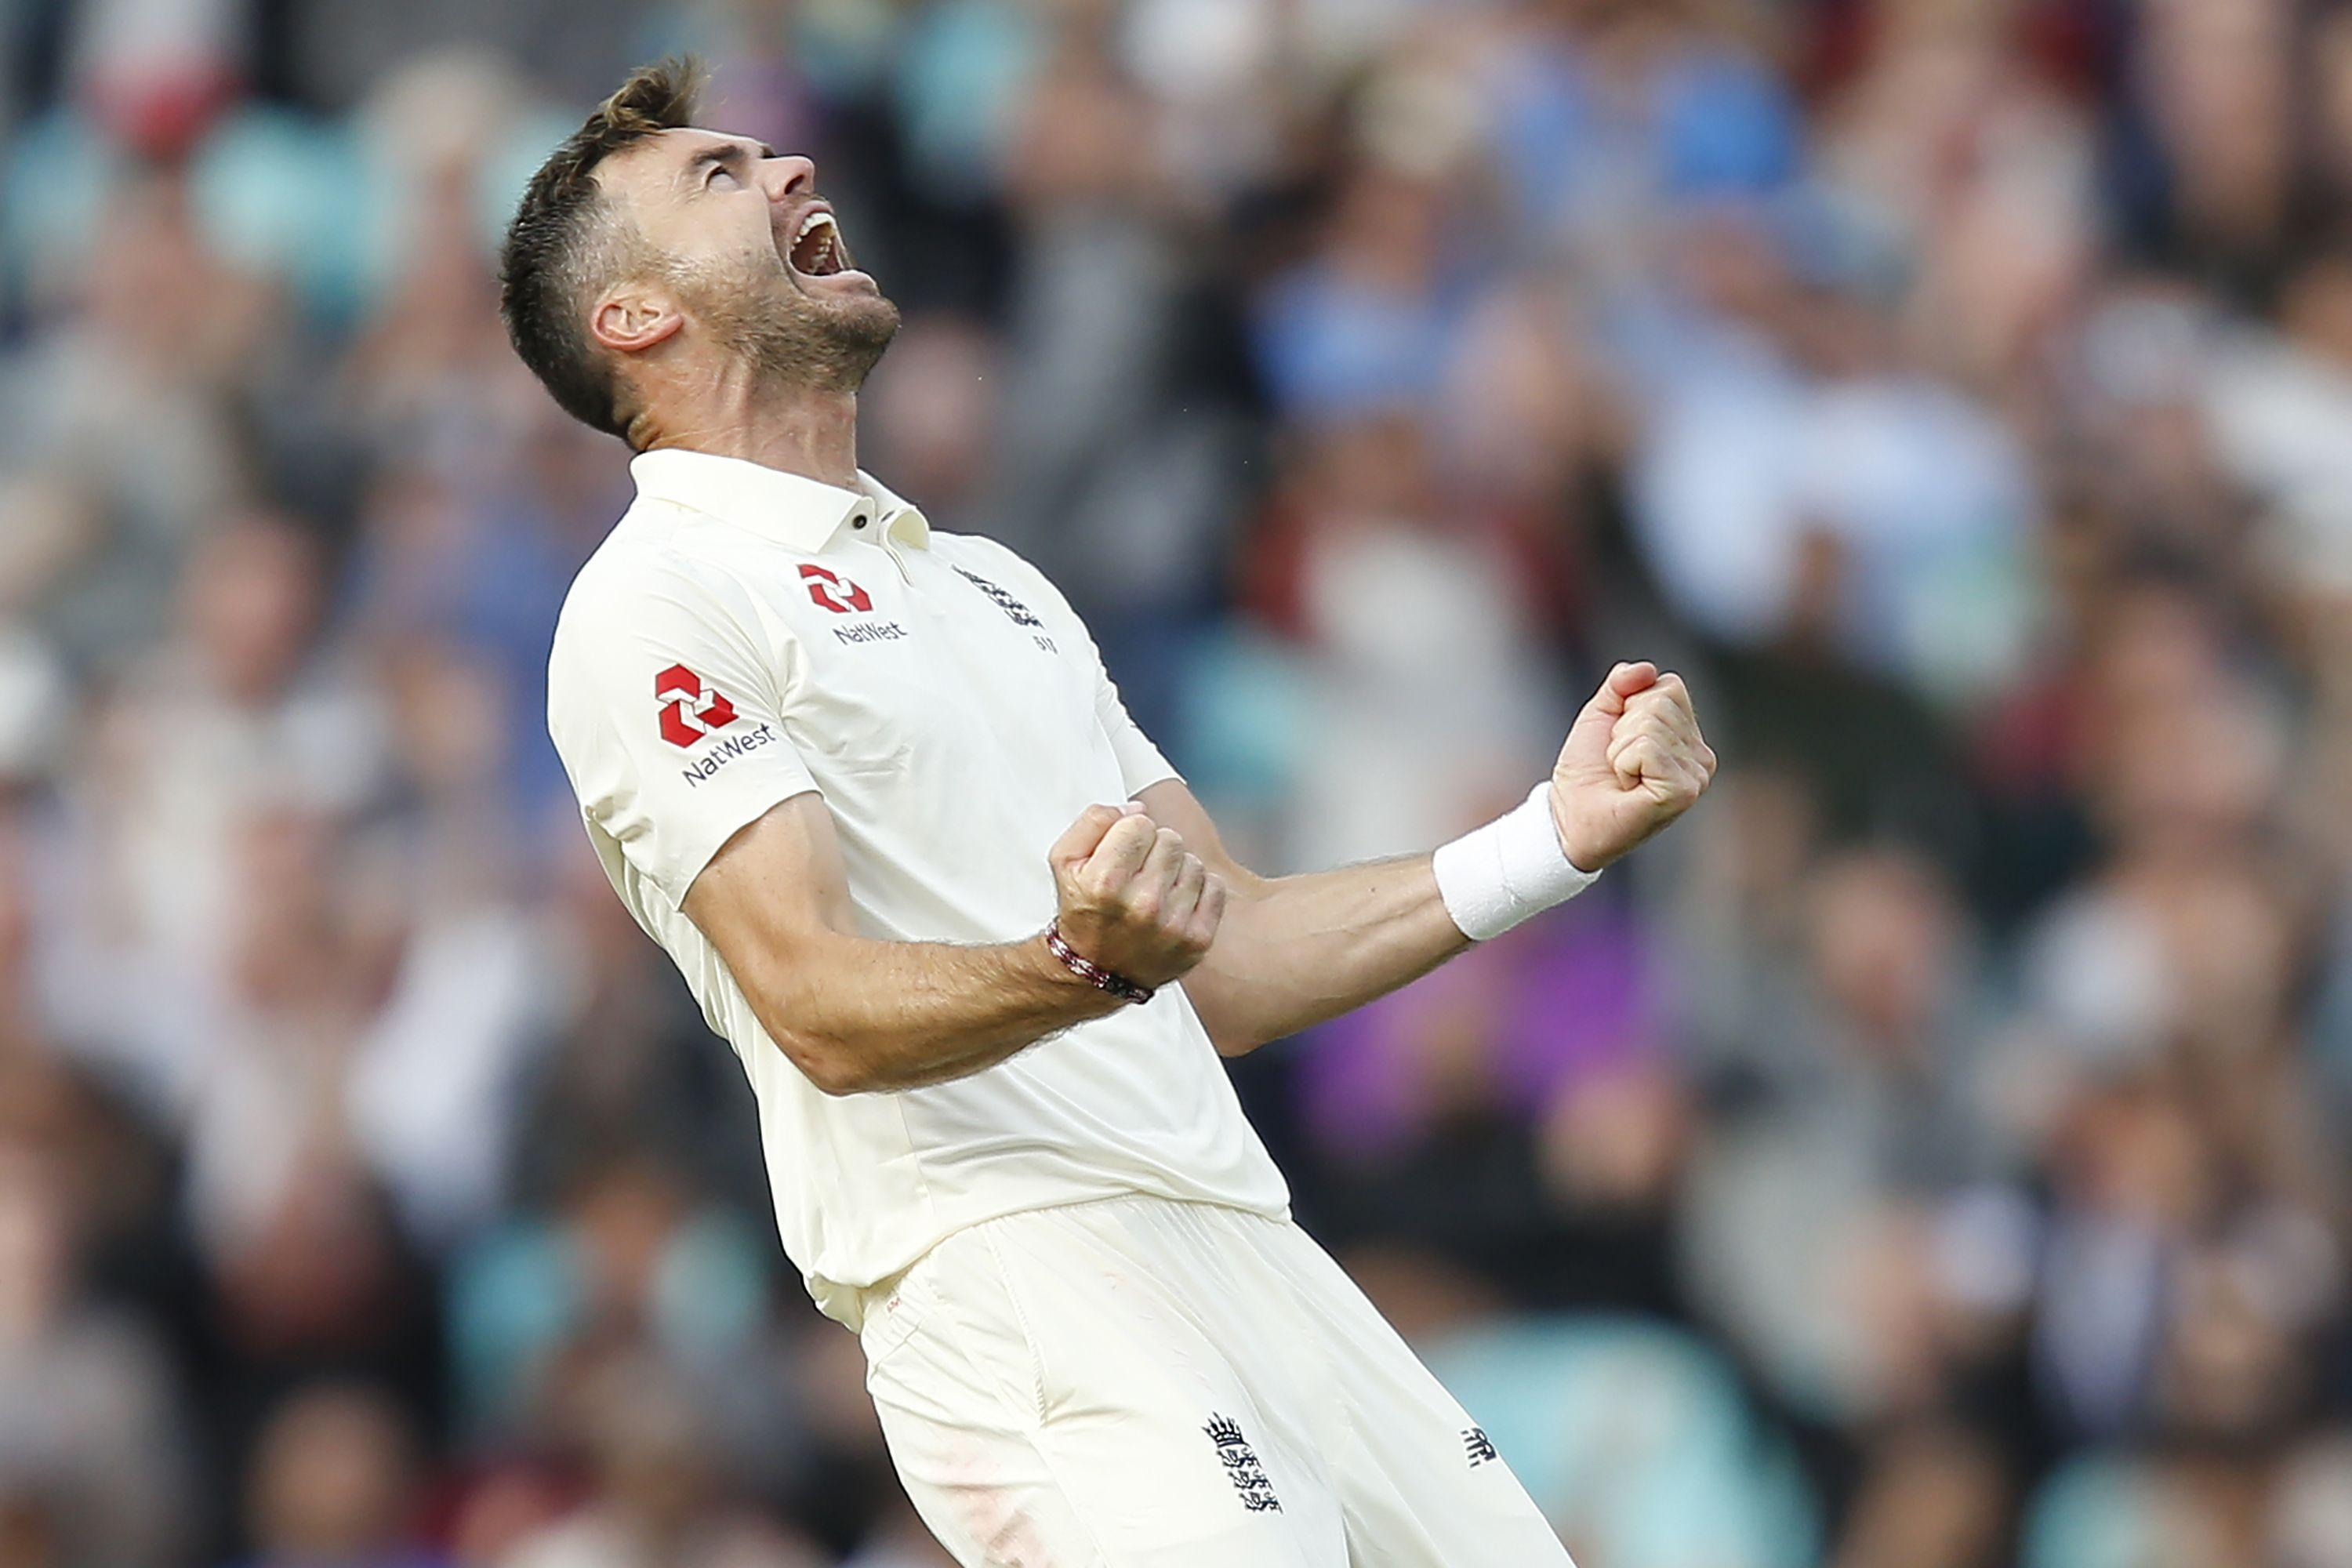 Anderson's two wickets took him to 561 in Test cricket, three away from overtaking Australia's Glenn McGrath.